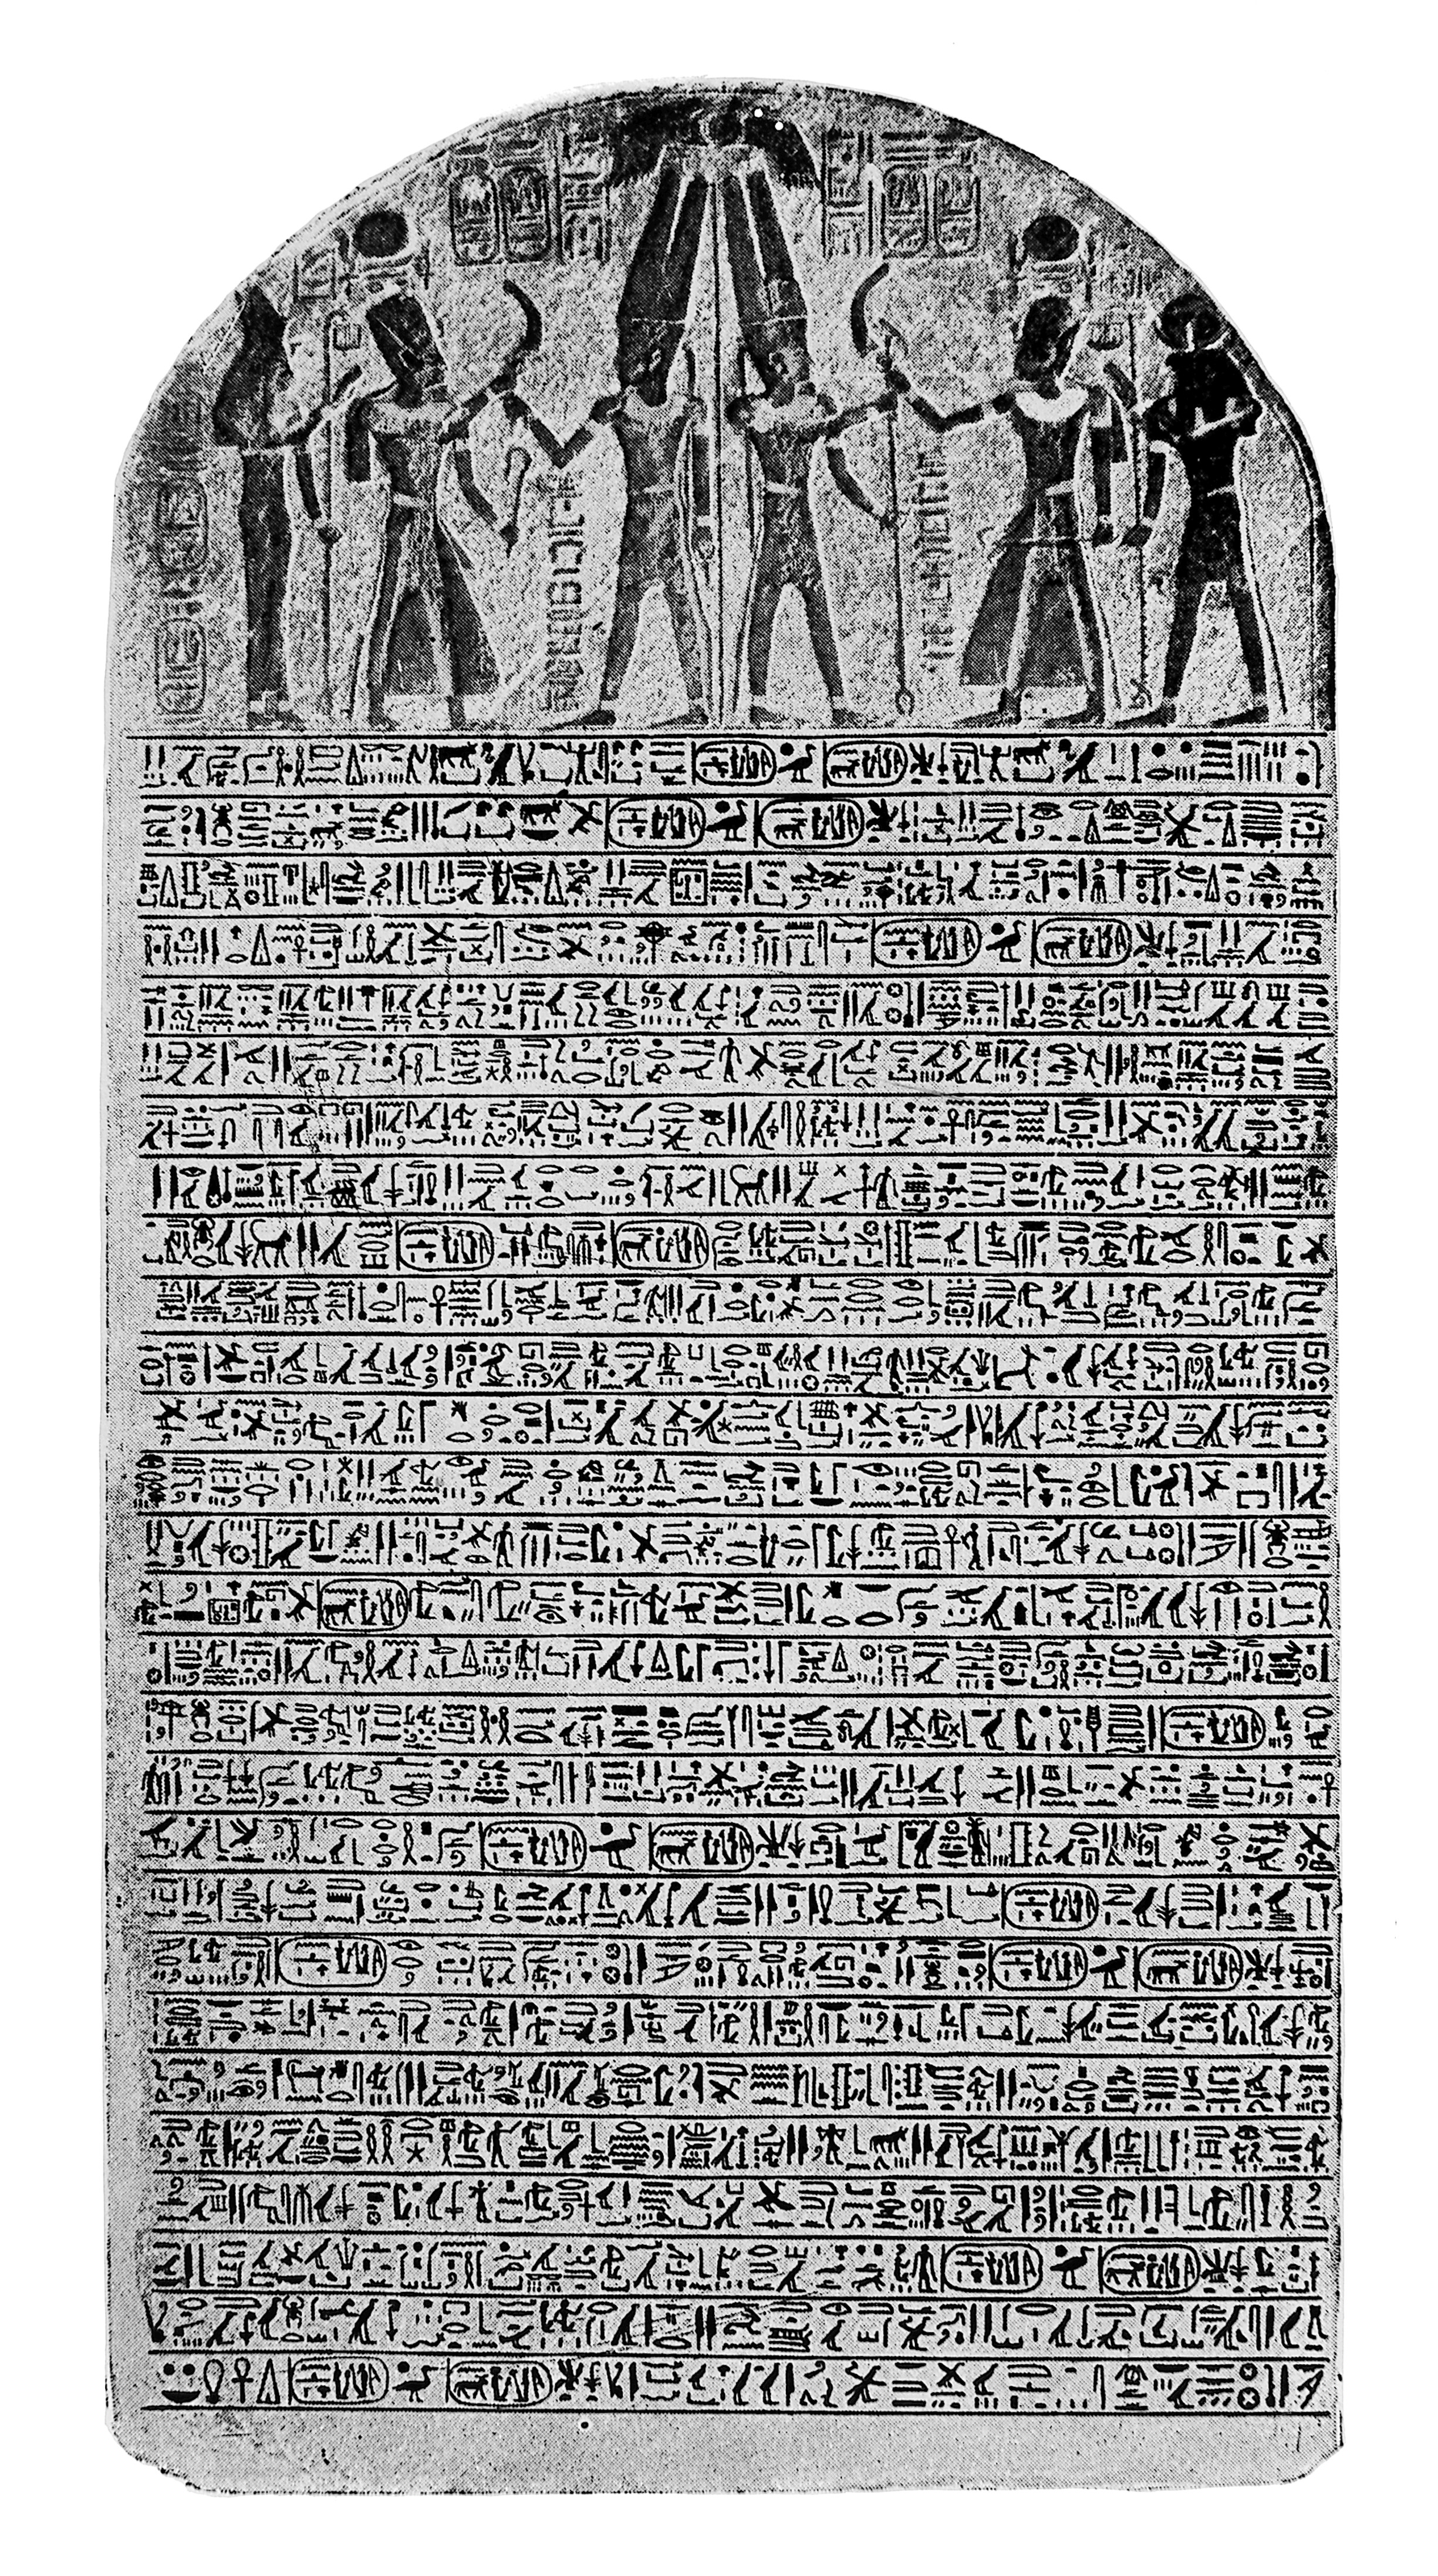 merneptah stele essay The land of canaan in the late bronze age dijkstra likens the mention of israel in the merneptah stele to a a conclusion he repeats in his summation essay.